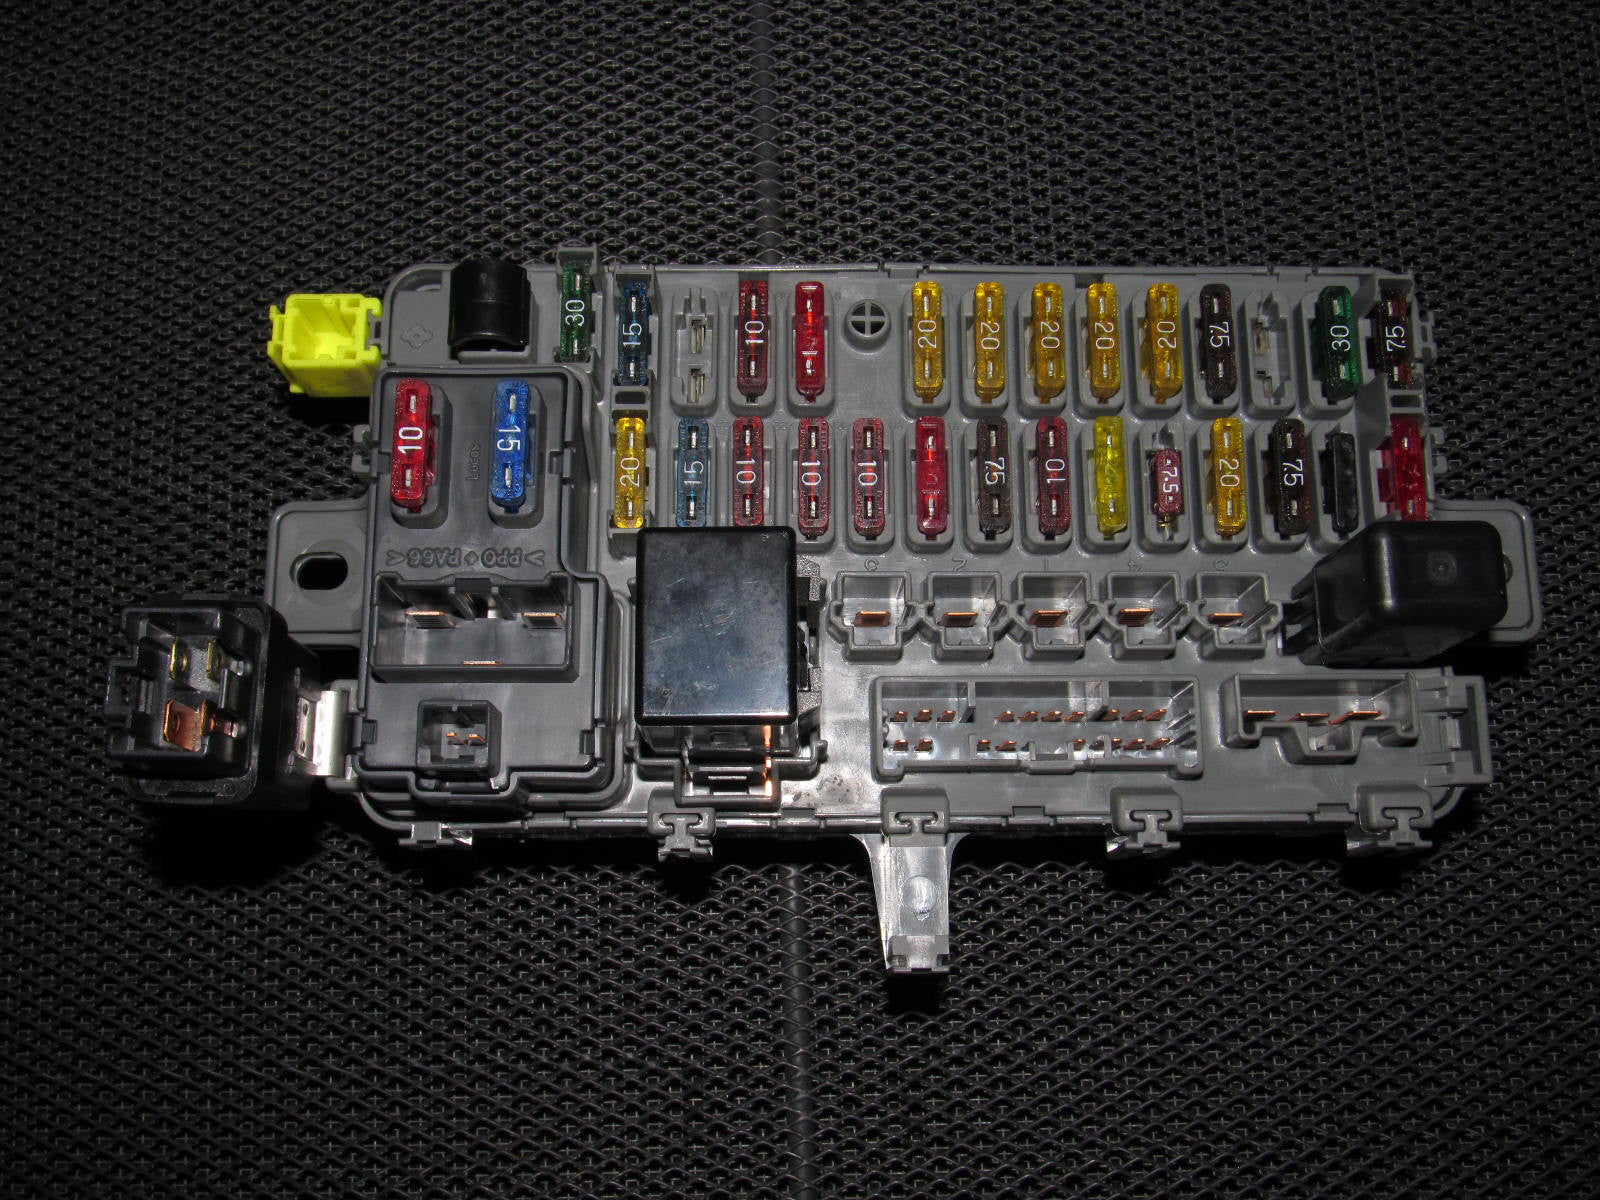 1994 Mustang Fuse Box Diagram Wiring Library 94 Honda Accord 98 Integra Gsr Experts Of U2022 Rh Evilcloud Co Uk 2004